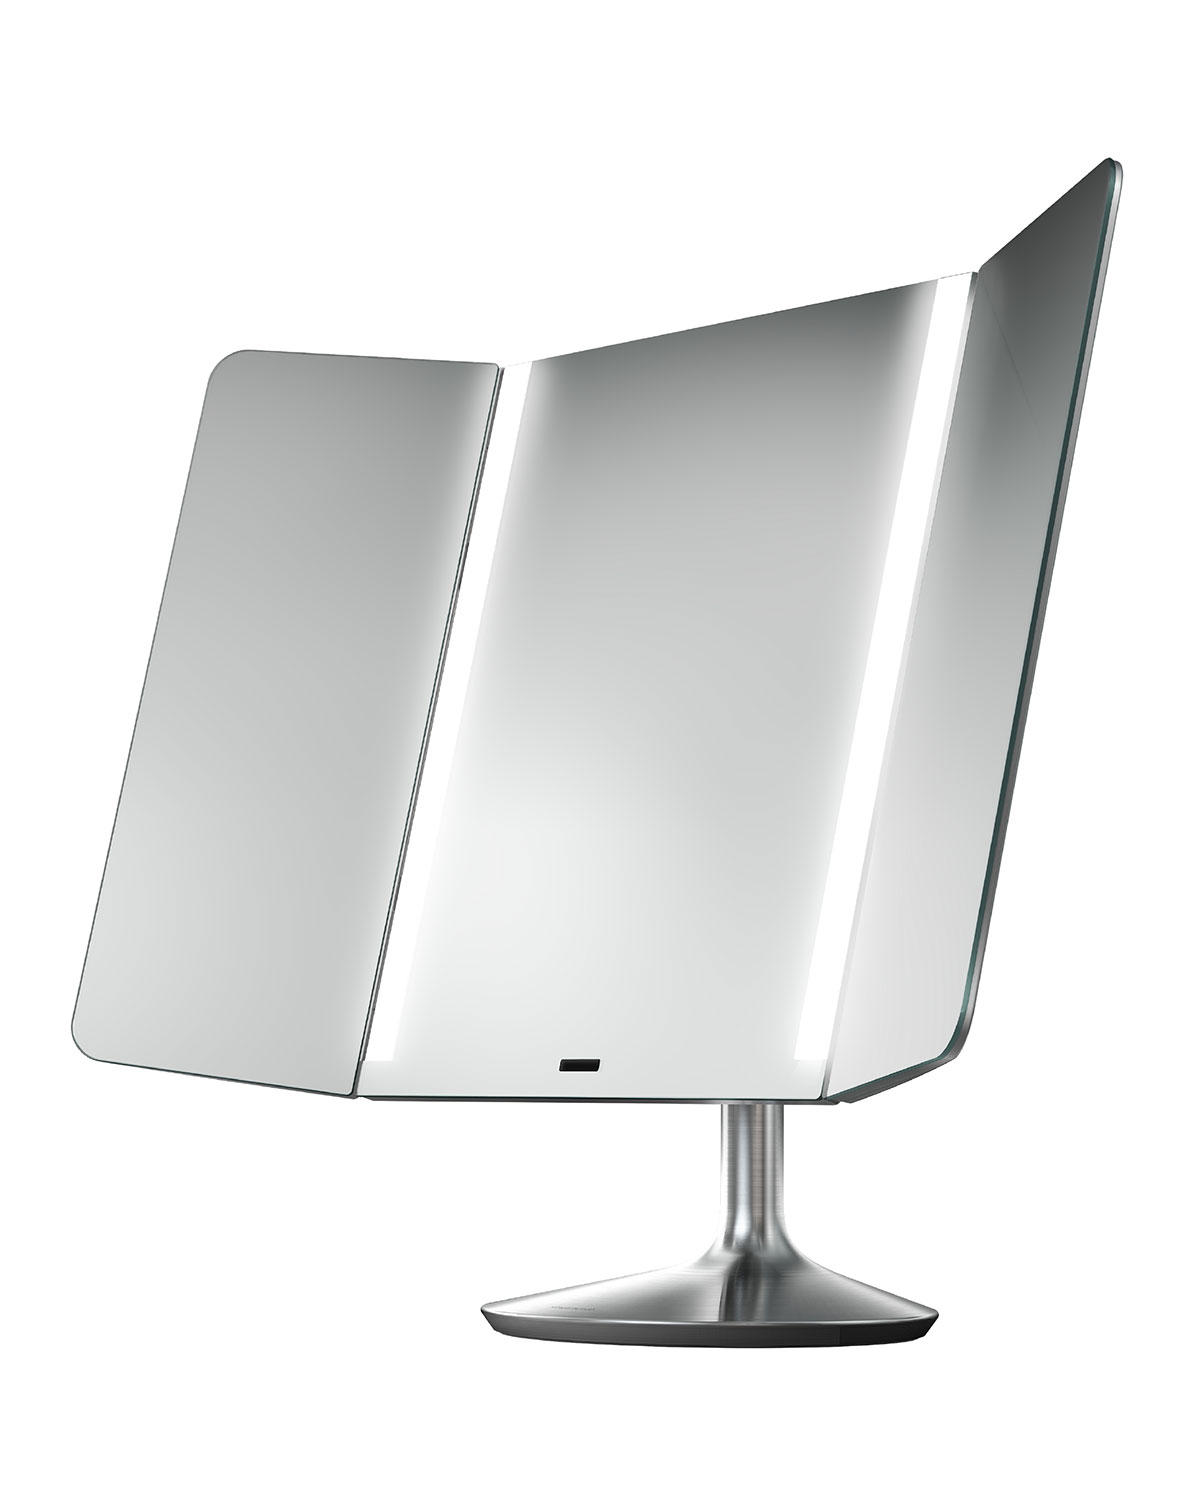 New Release simplehuman launched New Wide-View Sensor Mirror